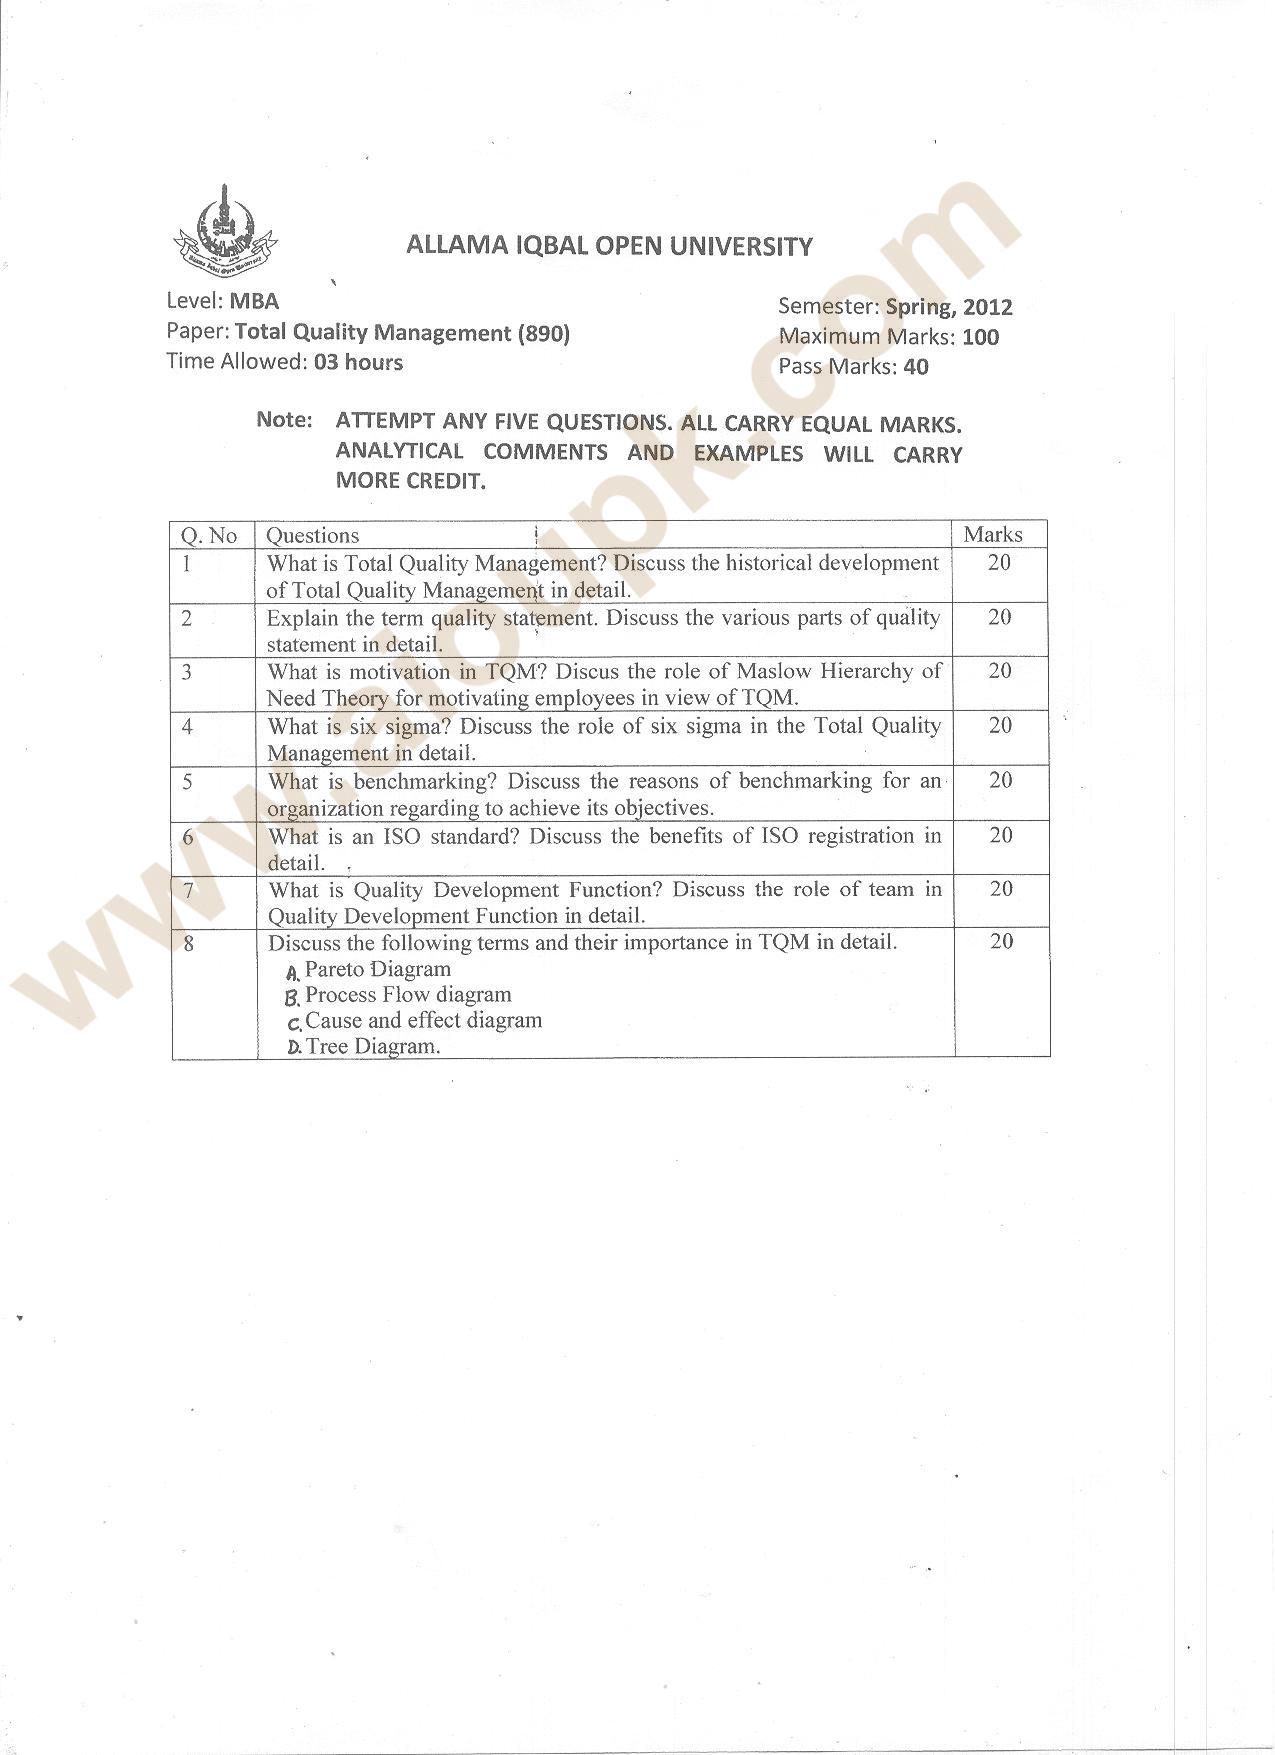 total quality management anna university question papers 2013 Anna university question paper for cse 2010 and 2013 regulation for anna university chennai total quality management - ge2022.